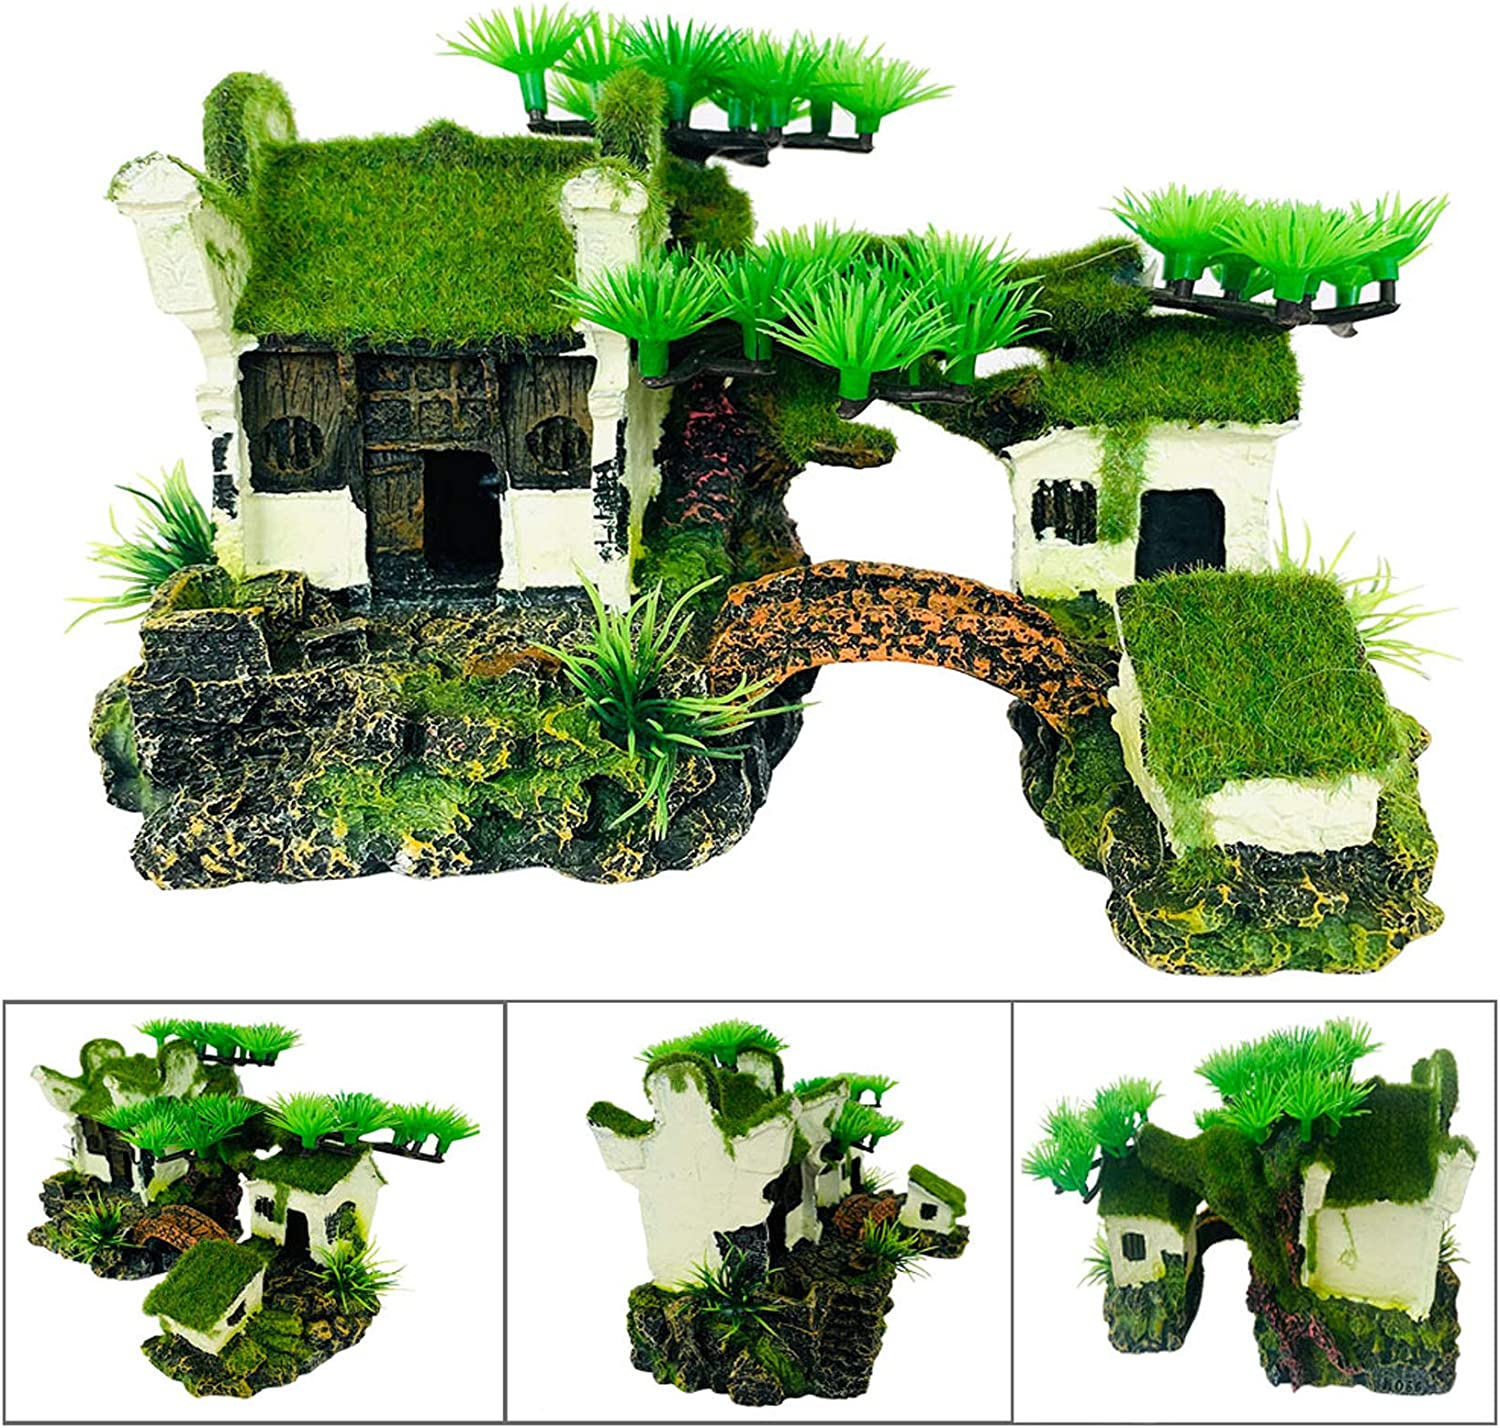 Hamiledyi Aquarium House Decorations Resin Fish Hideout Hut Betta Cave Rock Landscape Ornament Environments Asian Cottage with Bonsai and Mossy for Aquariums, Fish Tank, Gardens